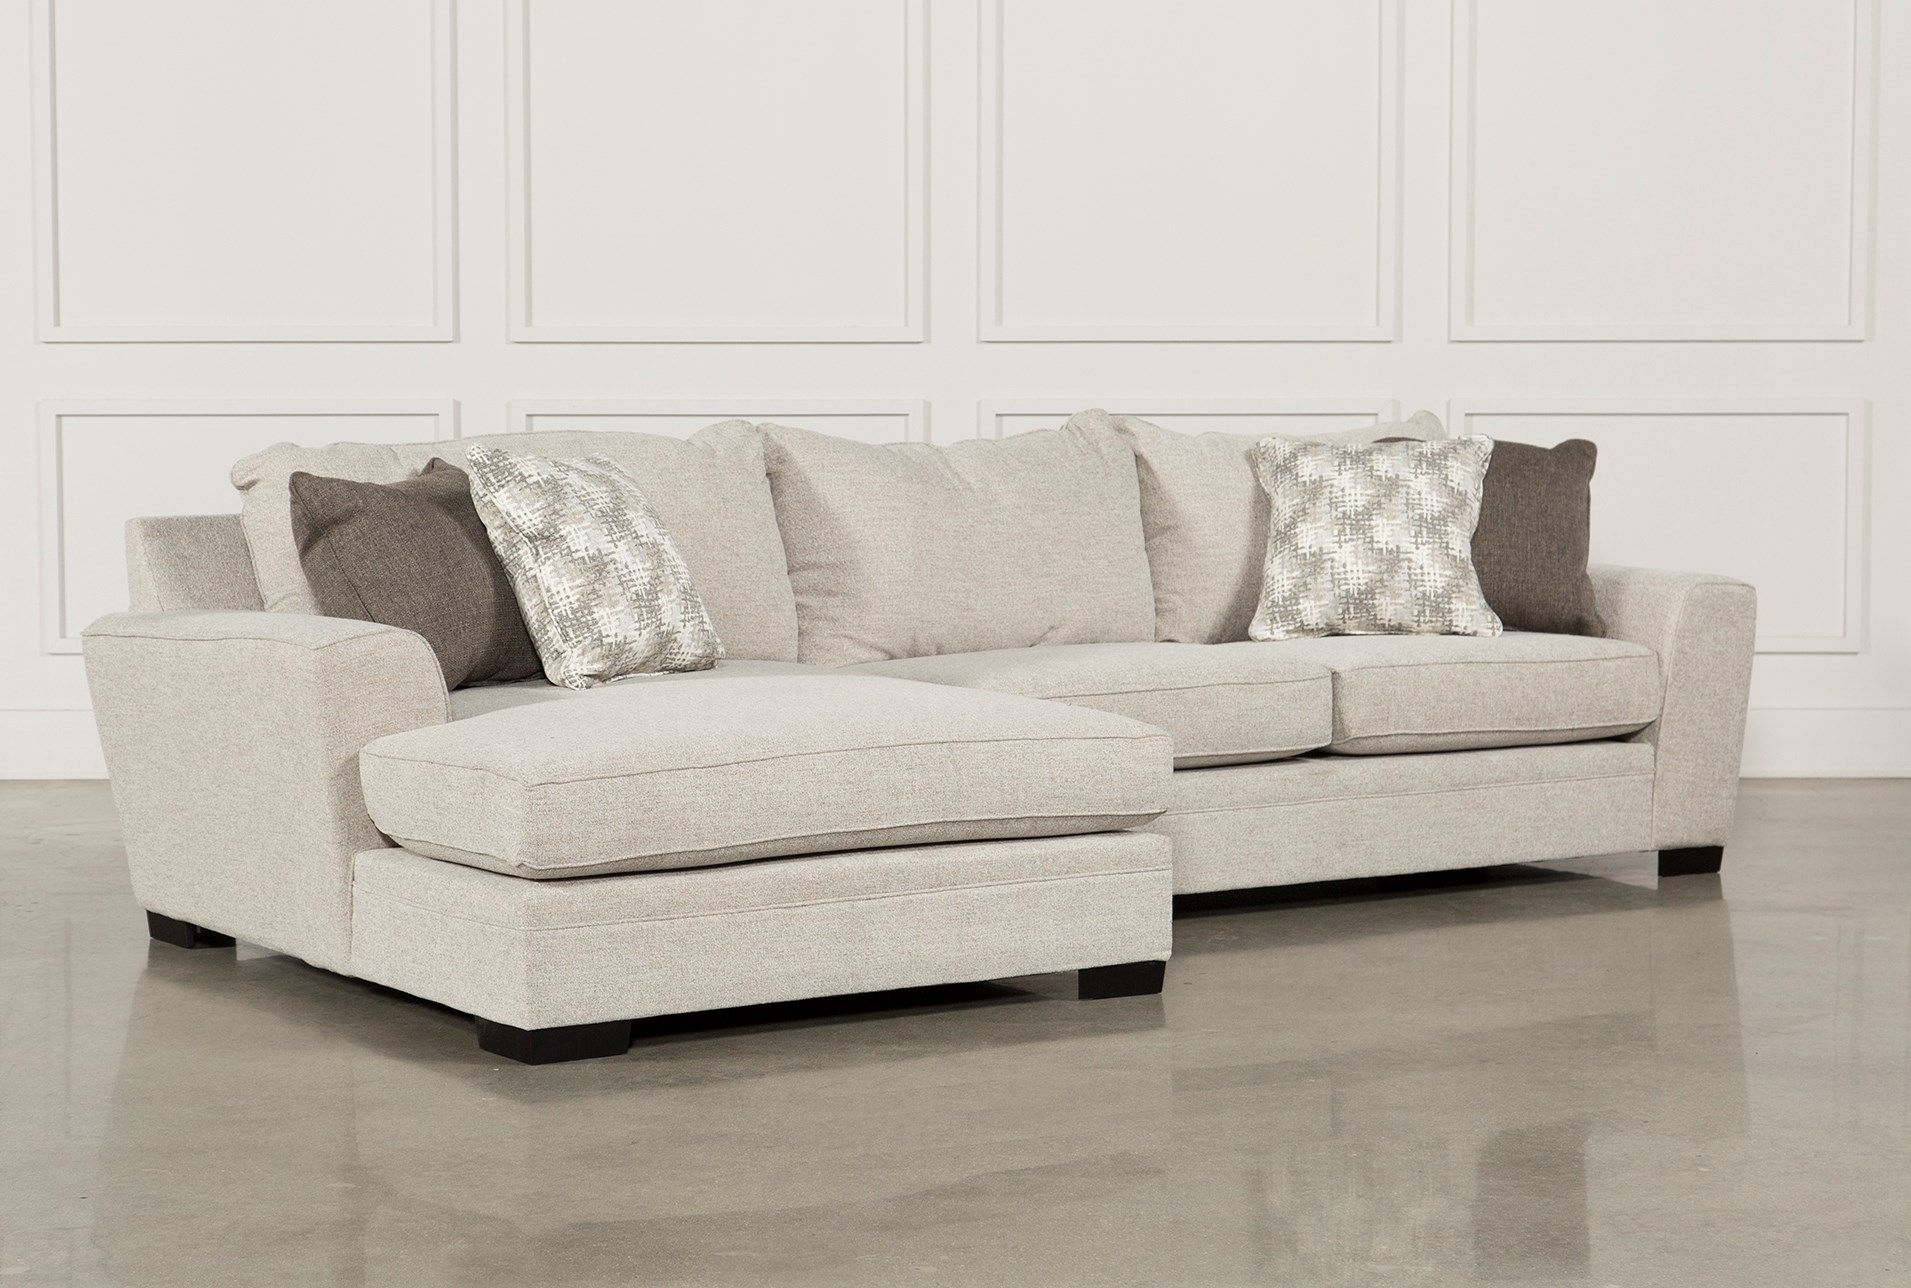 Delano 2 Piece Sectional W/laf Oversized Chaise | Pinterest | Living within Mesa Foam 2 Piece Sectionals (Image 7 of 30)